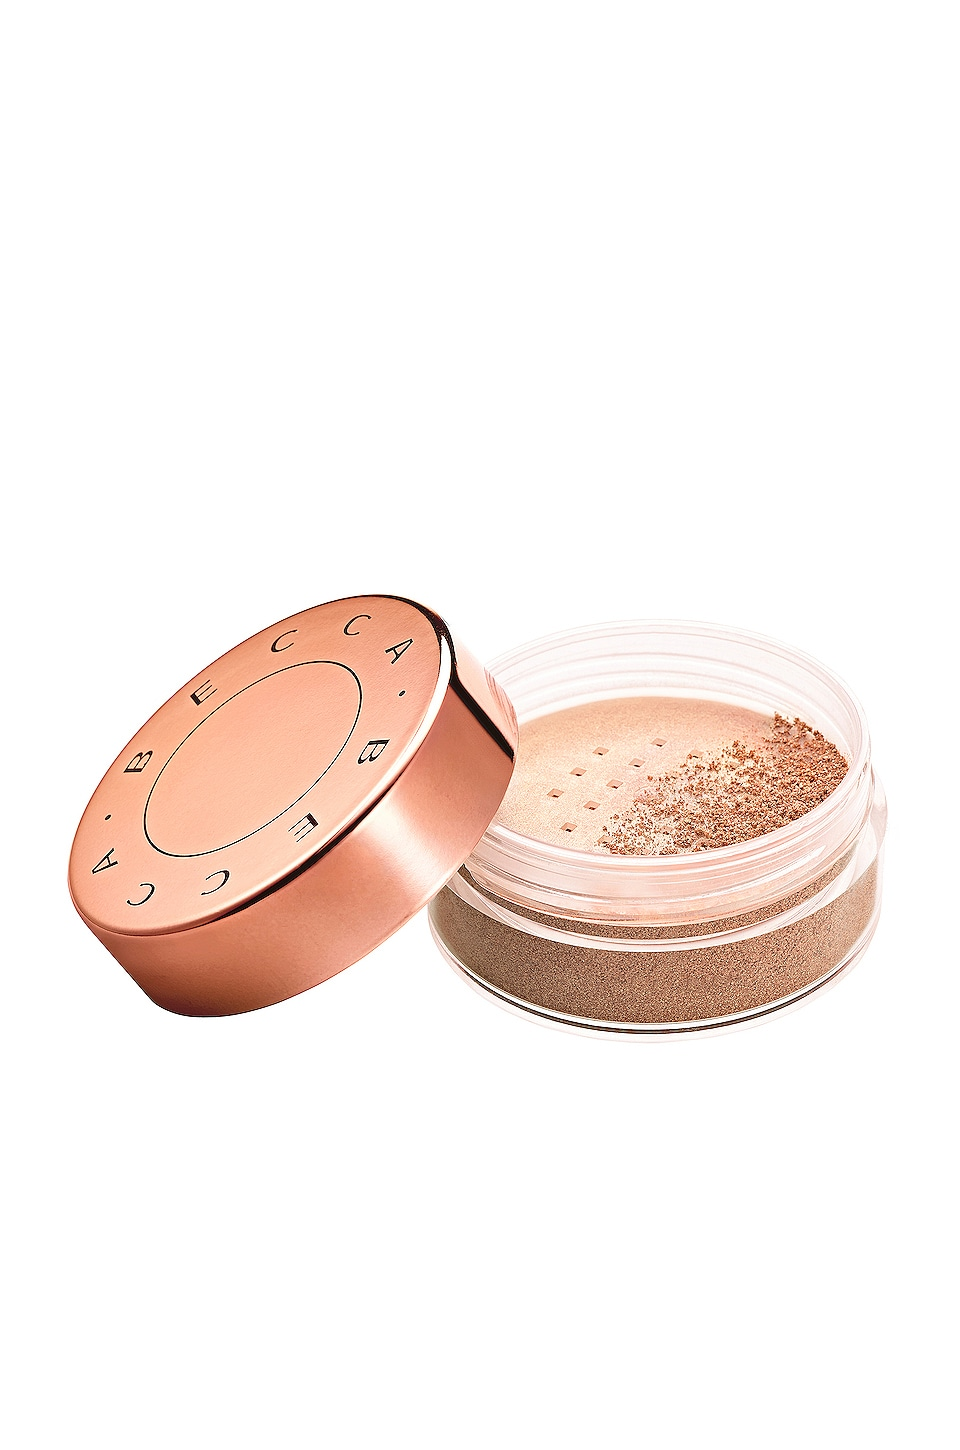 BECCA Champagne Pop Collector Glow Dust Highlighter in Champagne Pop